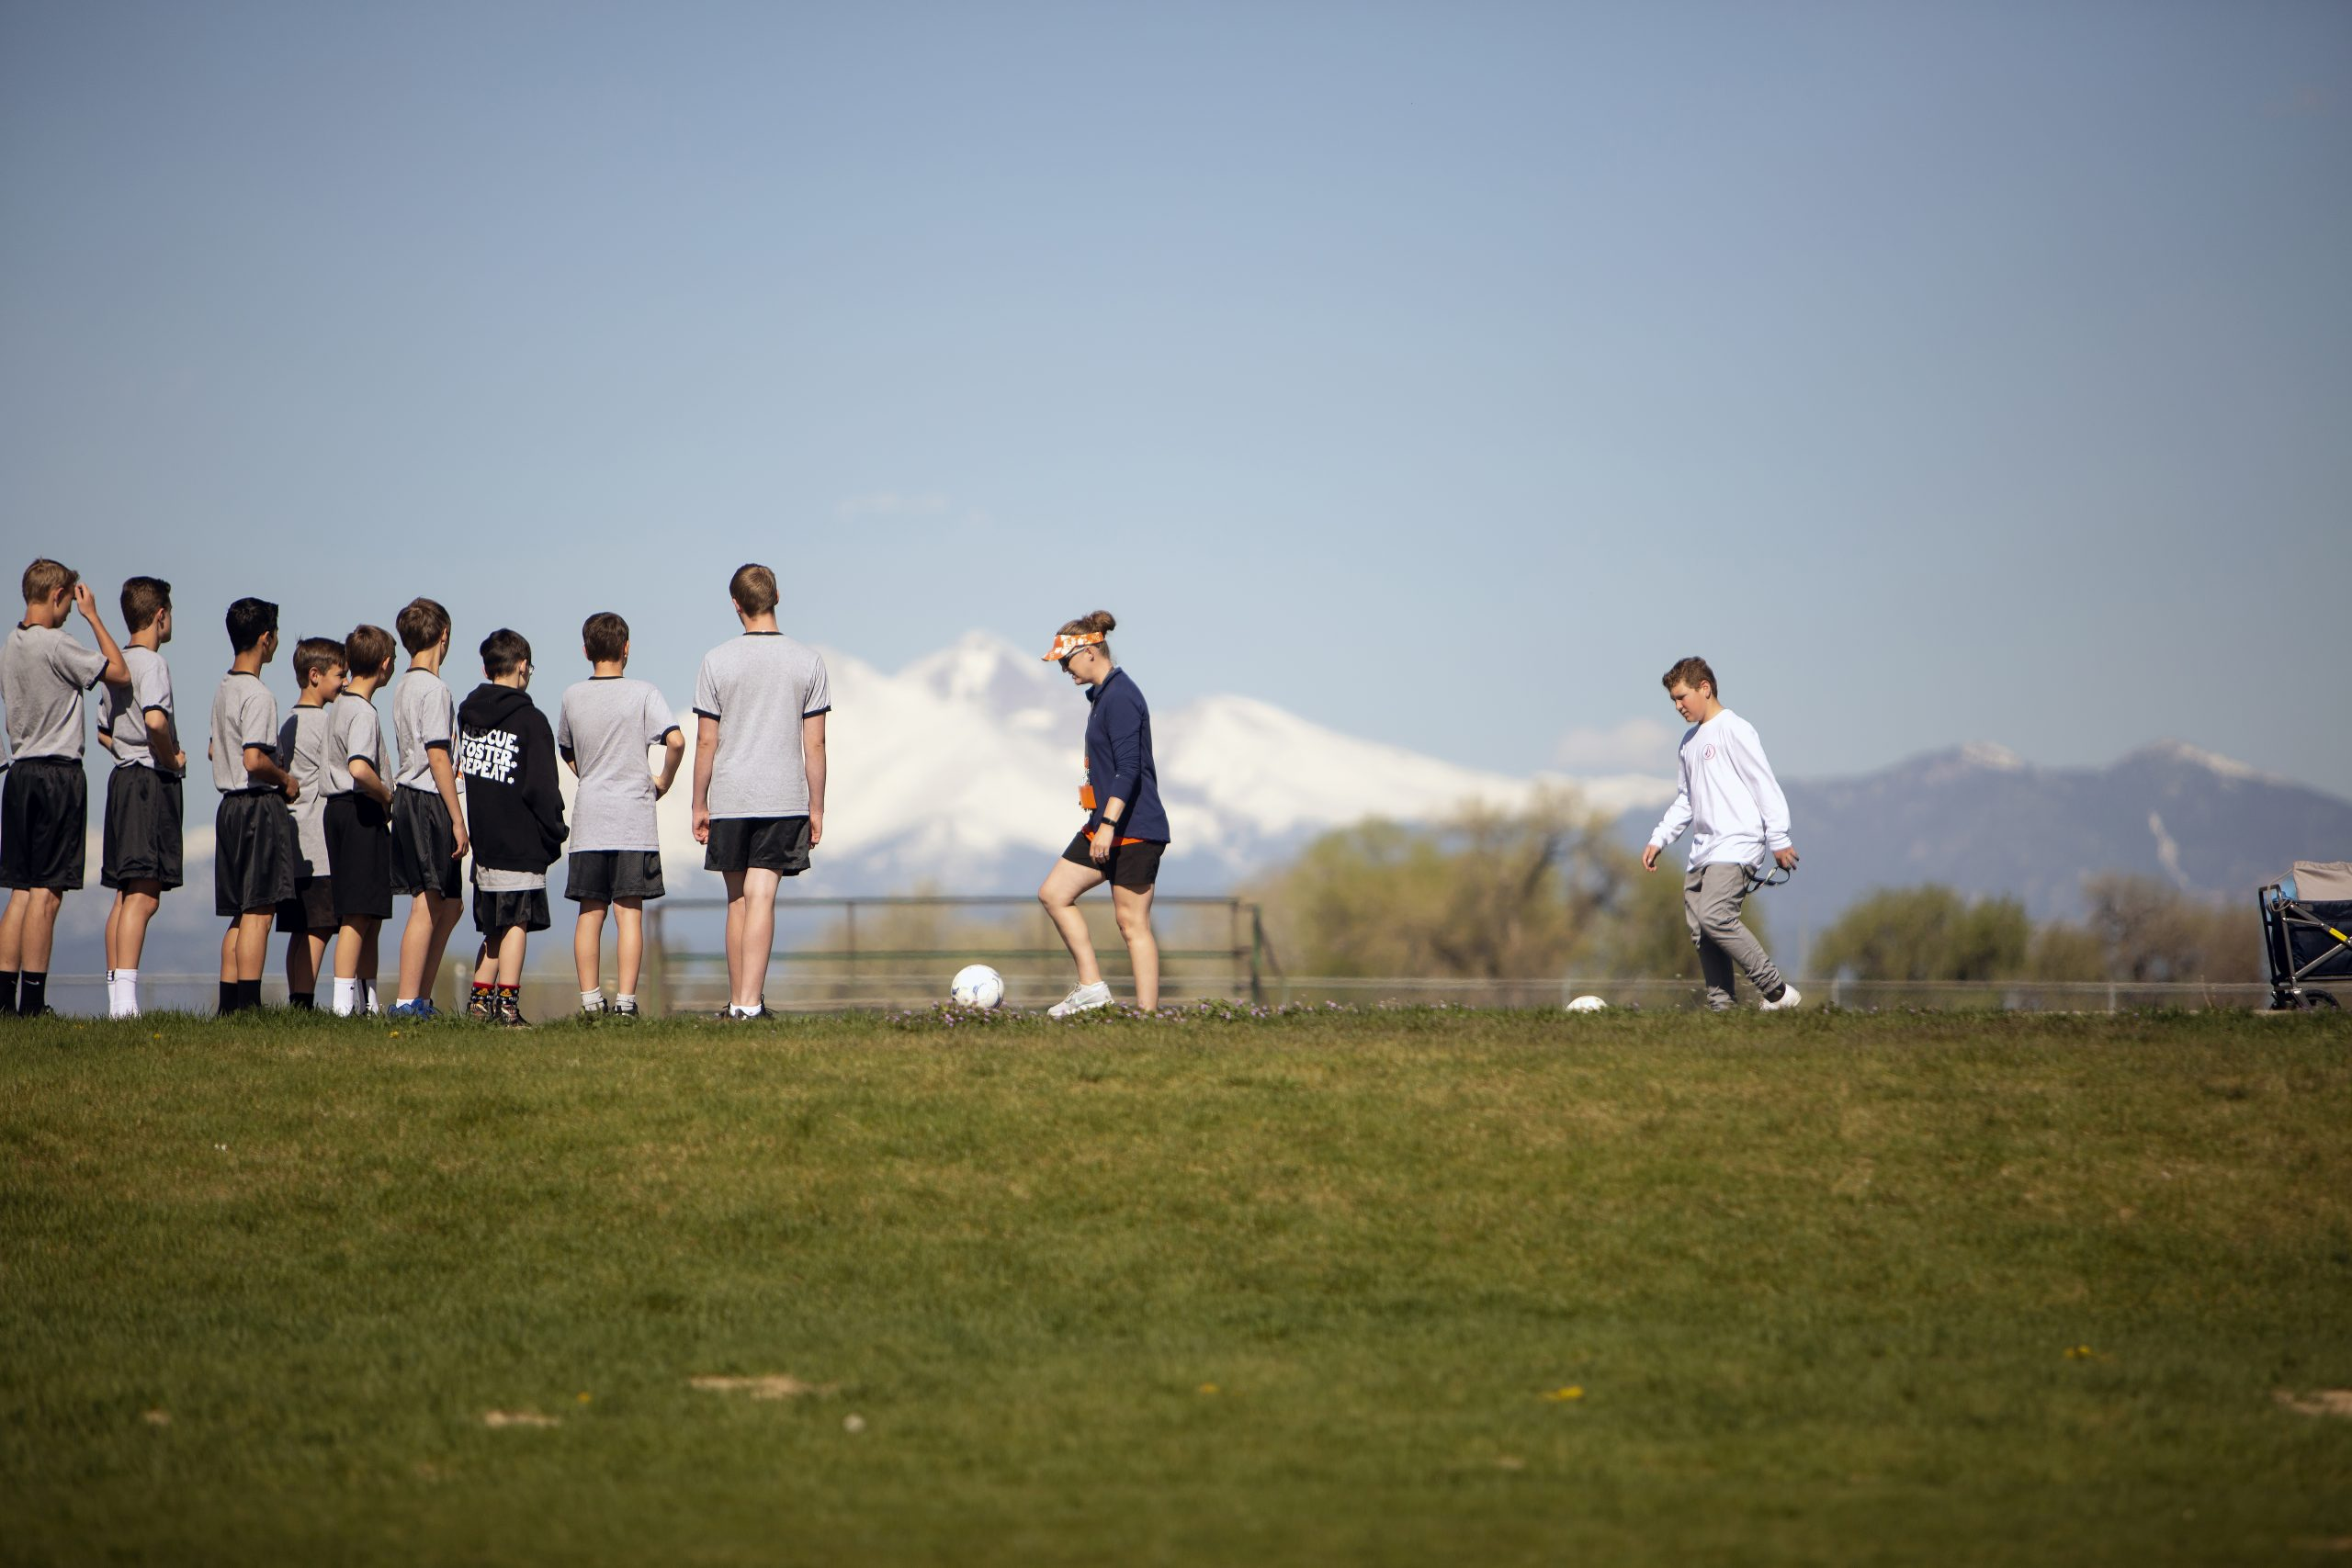 Students playing soccer in front of mountain range